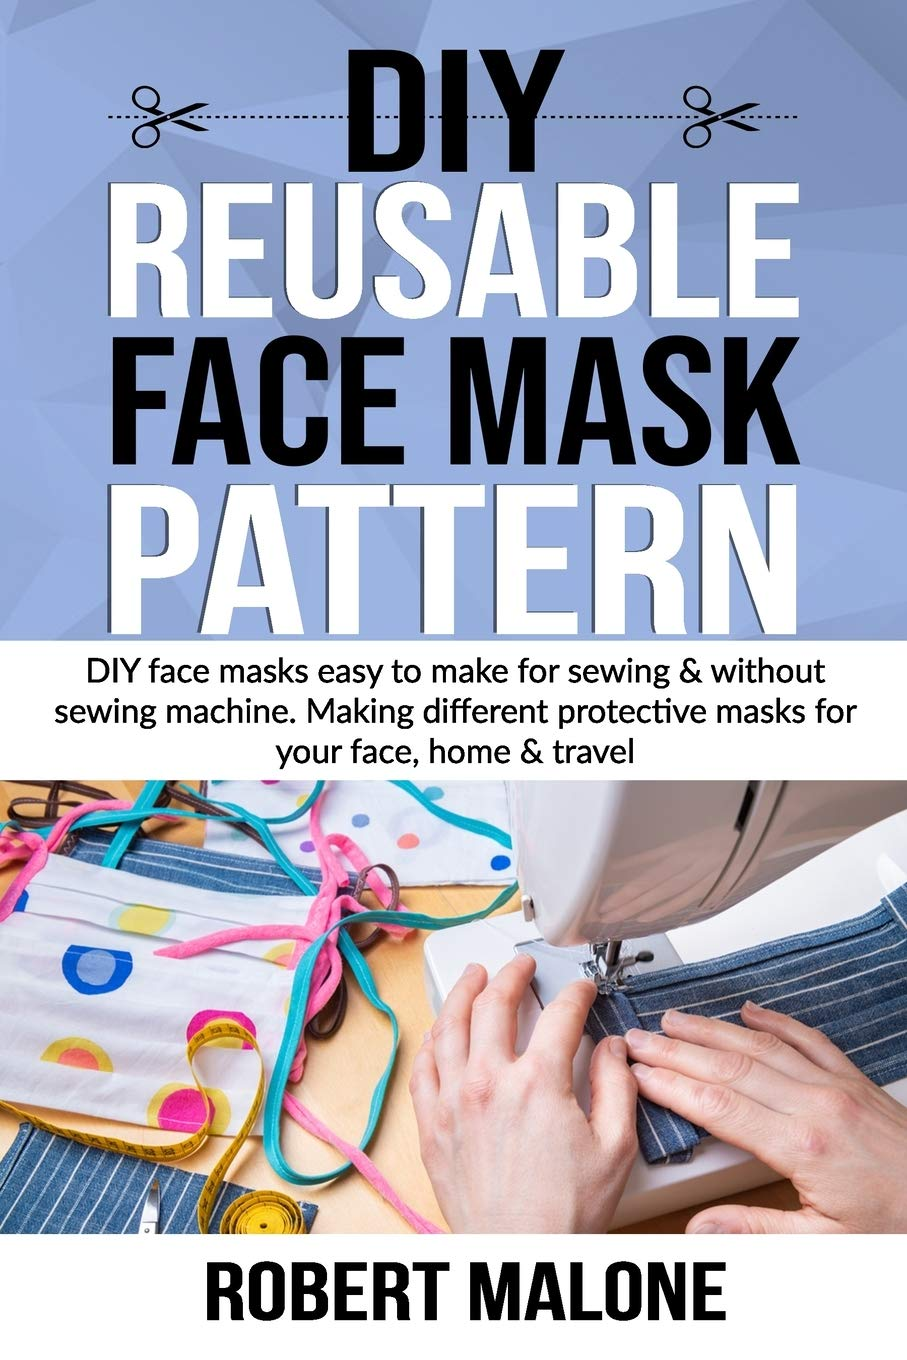 Diy Reusable Face Mask Pattern Diy Face Masks Easy To Make For Sewing Without Sewing Machine Making Different Protective Masks For Your Face Home Travel Amazon Co Uk Malone Robert 9798670680486 Books